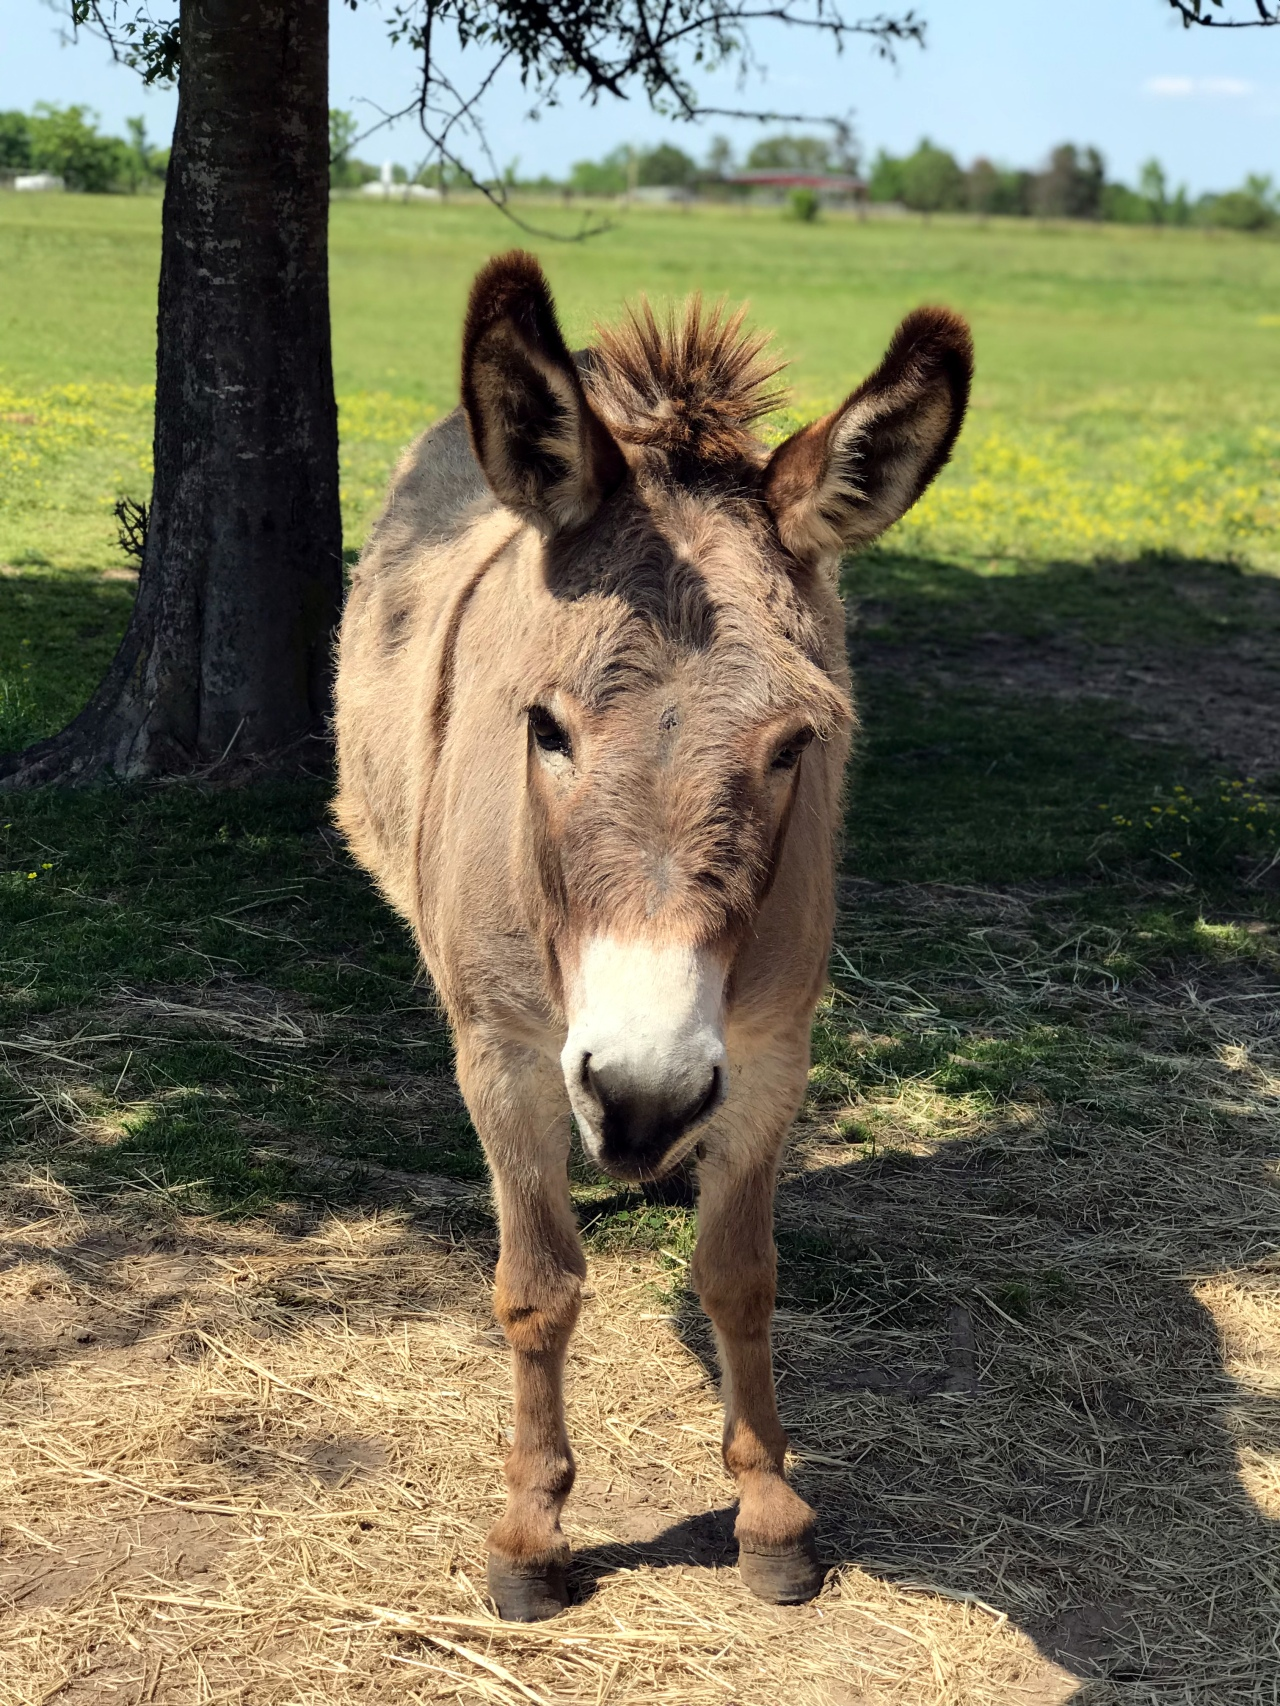 Mary the donkey stands under a tree